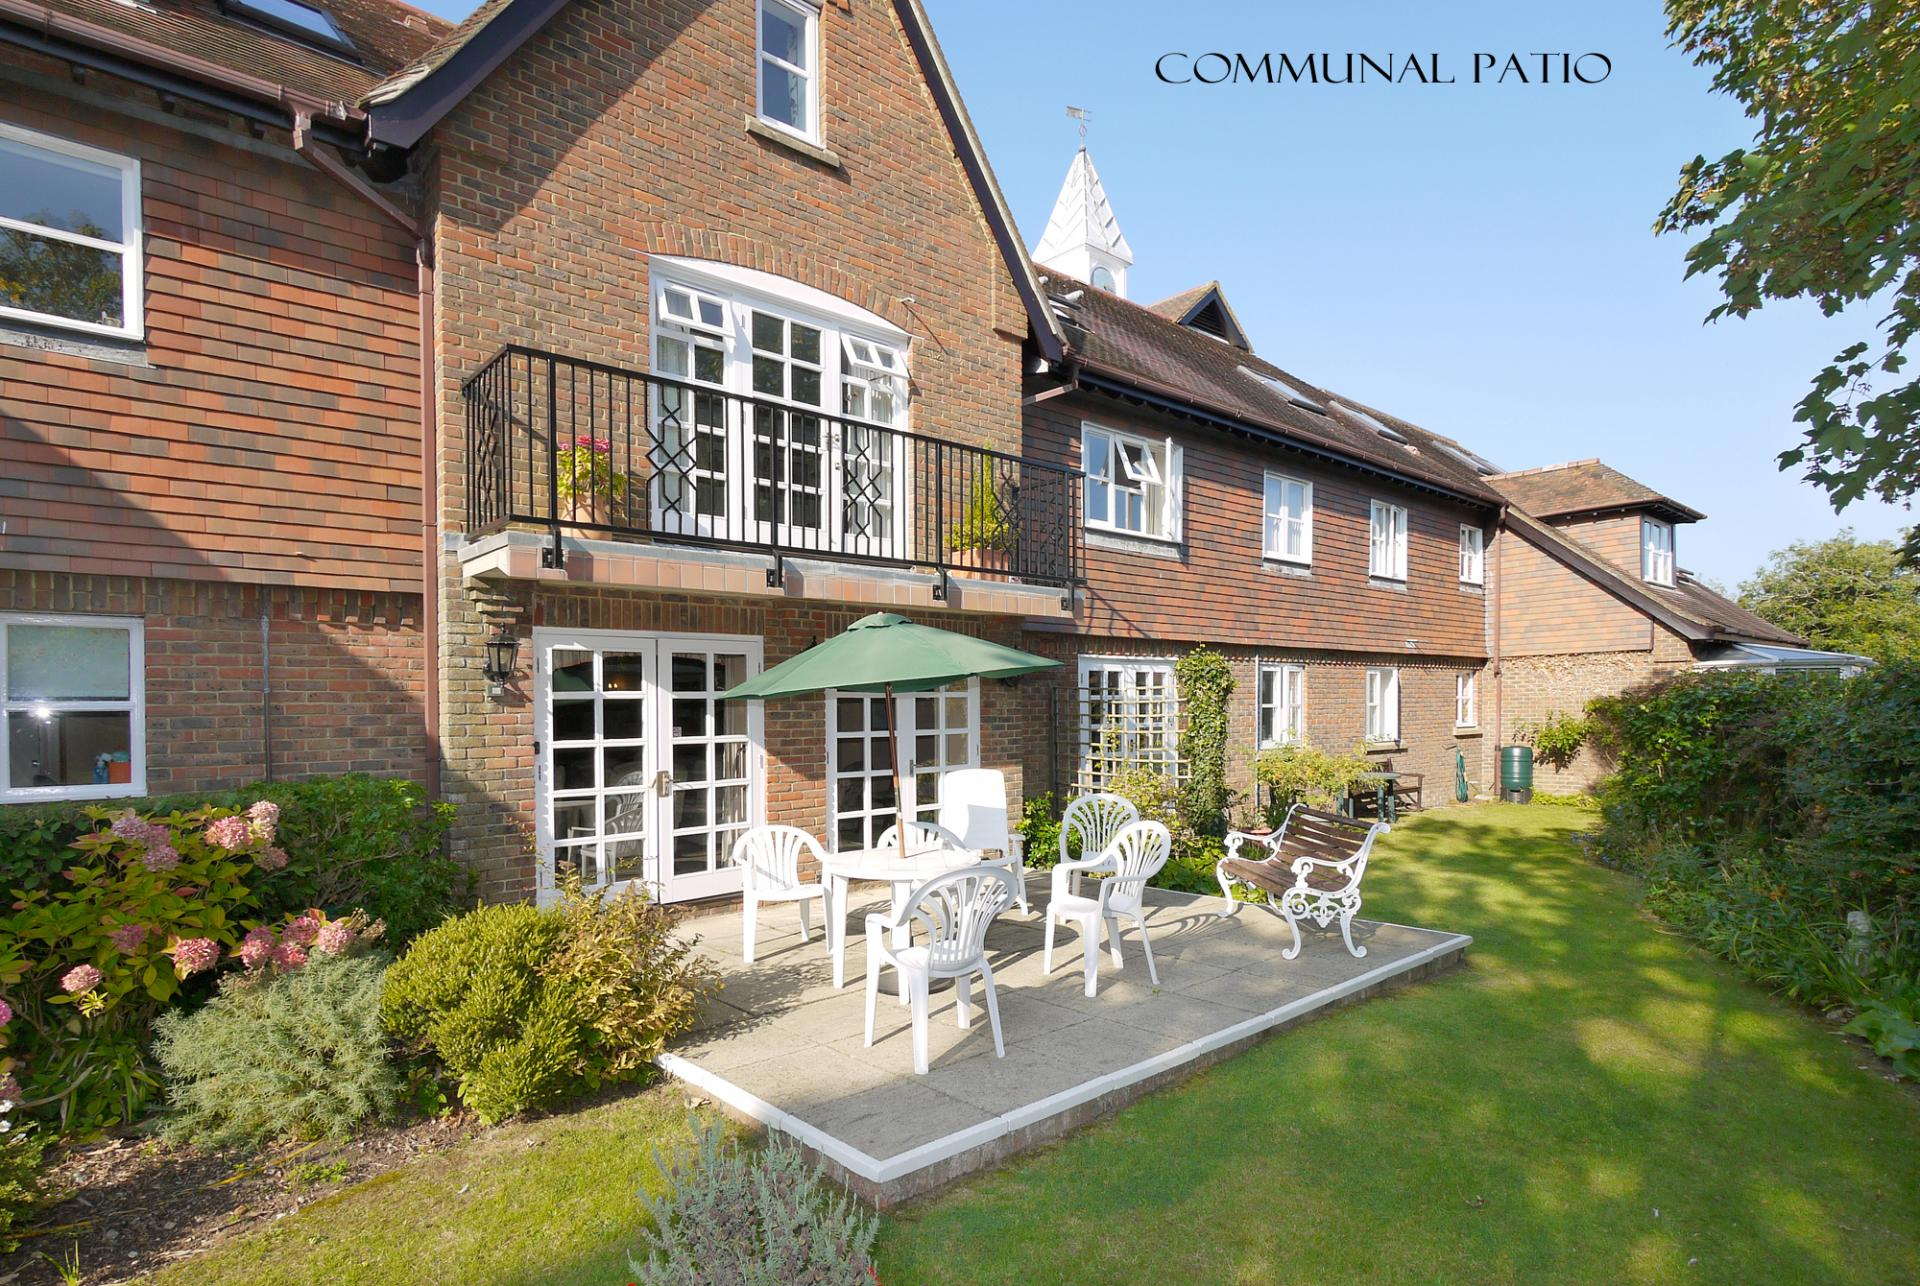 2 Bedroom Apartment For Sale In Lymington